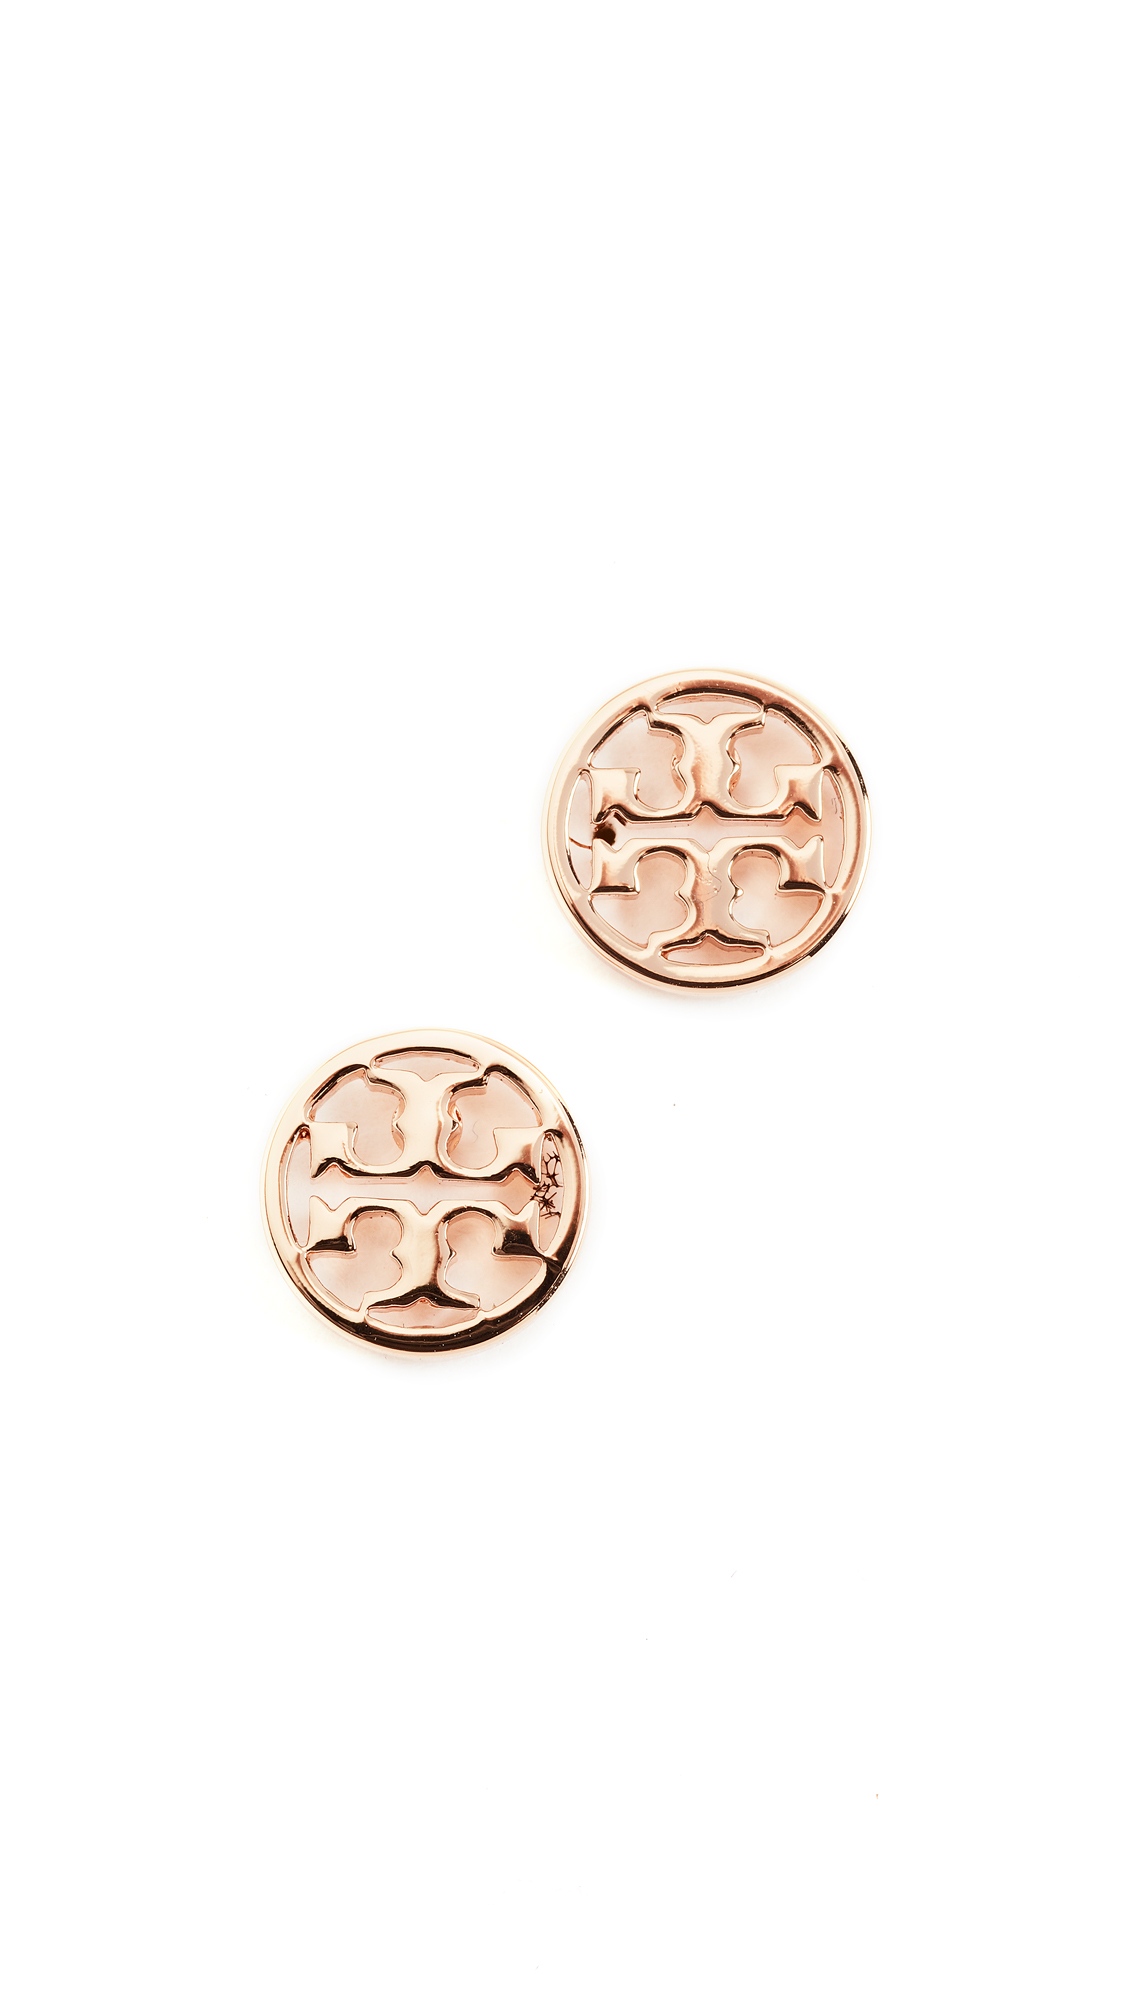 Tory Burch Logo Circle Stud Earrings - Rose Gold